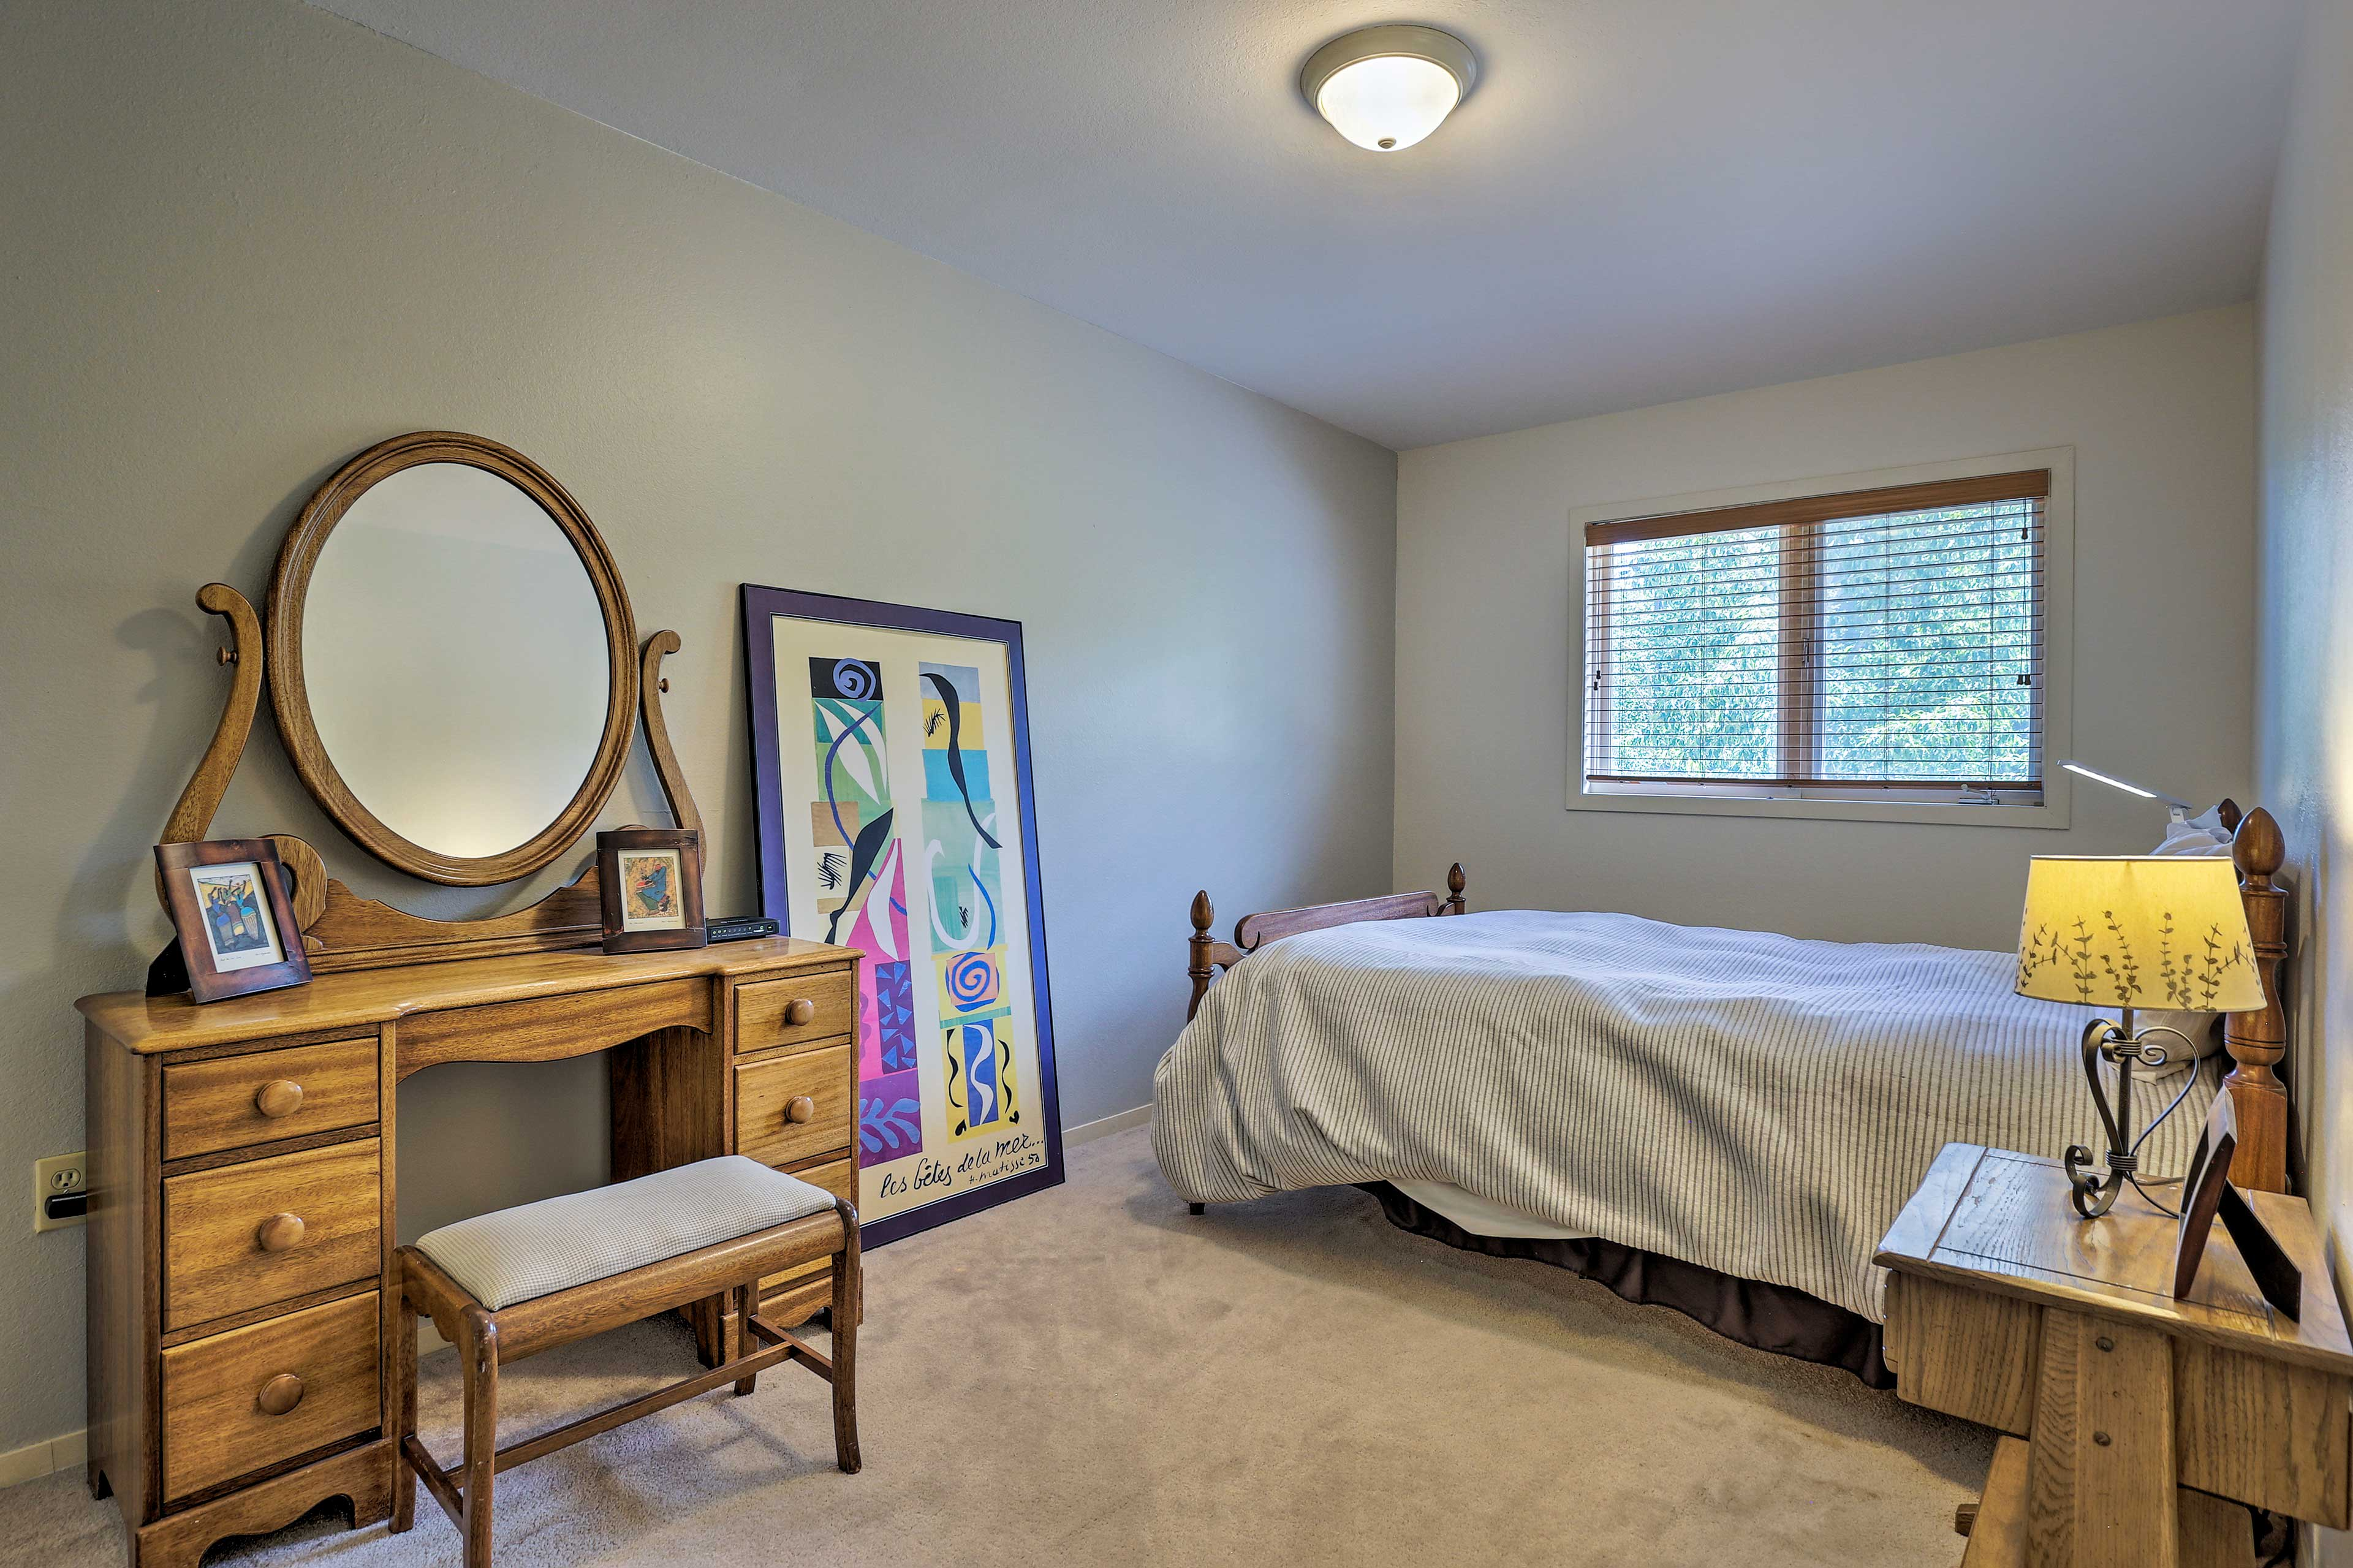 The second bedroom has a queen mattress for 2 guests.